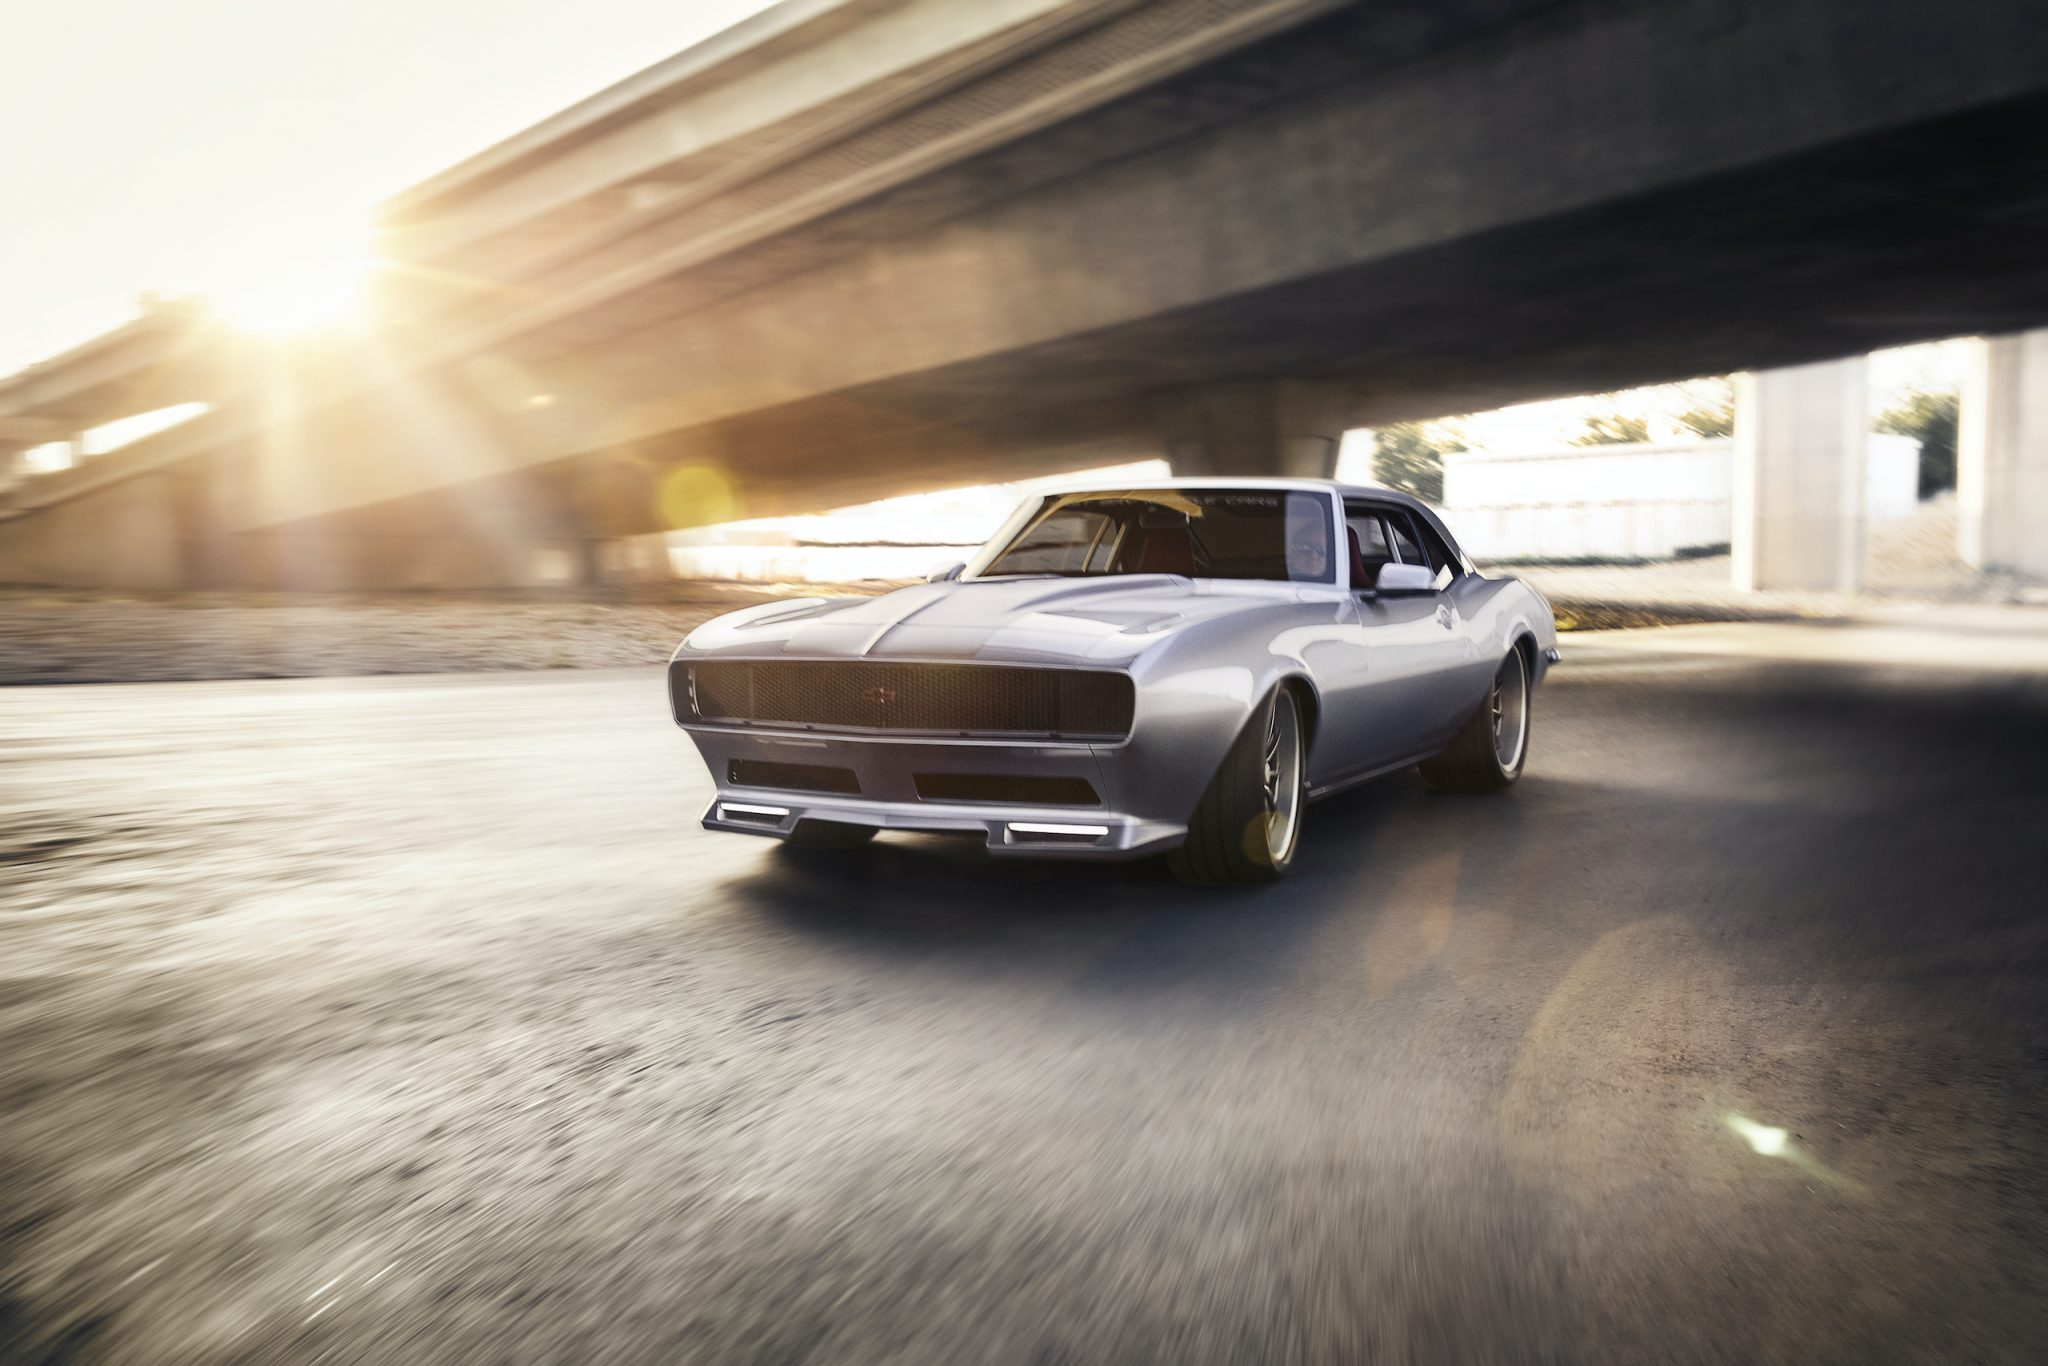 It's still clearly a 1968 Camaro, but East Bay Muscle Cars widened the body 5 inches, added custom rockers, flush-mounted the windshield, and reshaped the hood and fenders with more pronounced peaks. Joseph Puhy